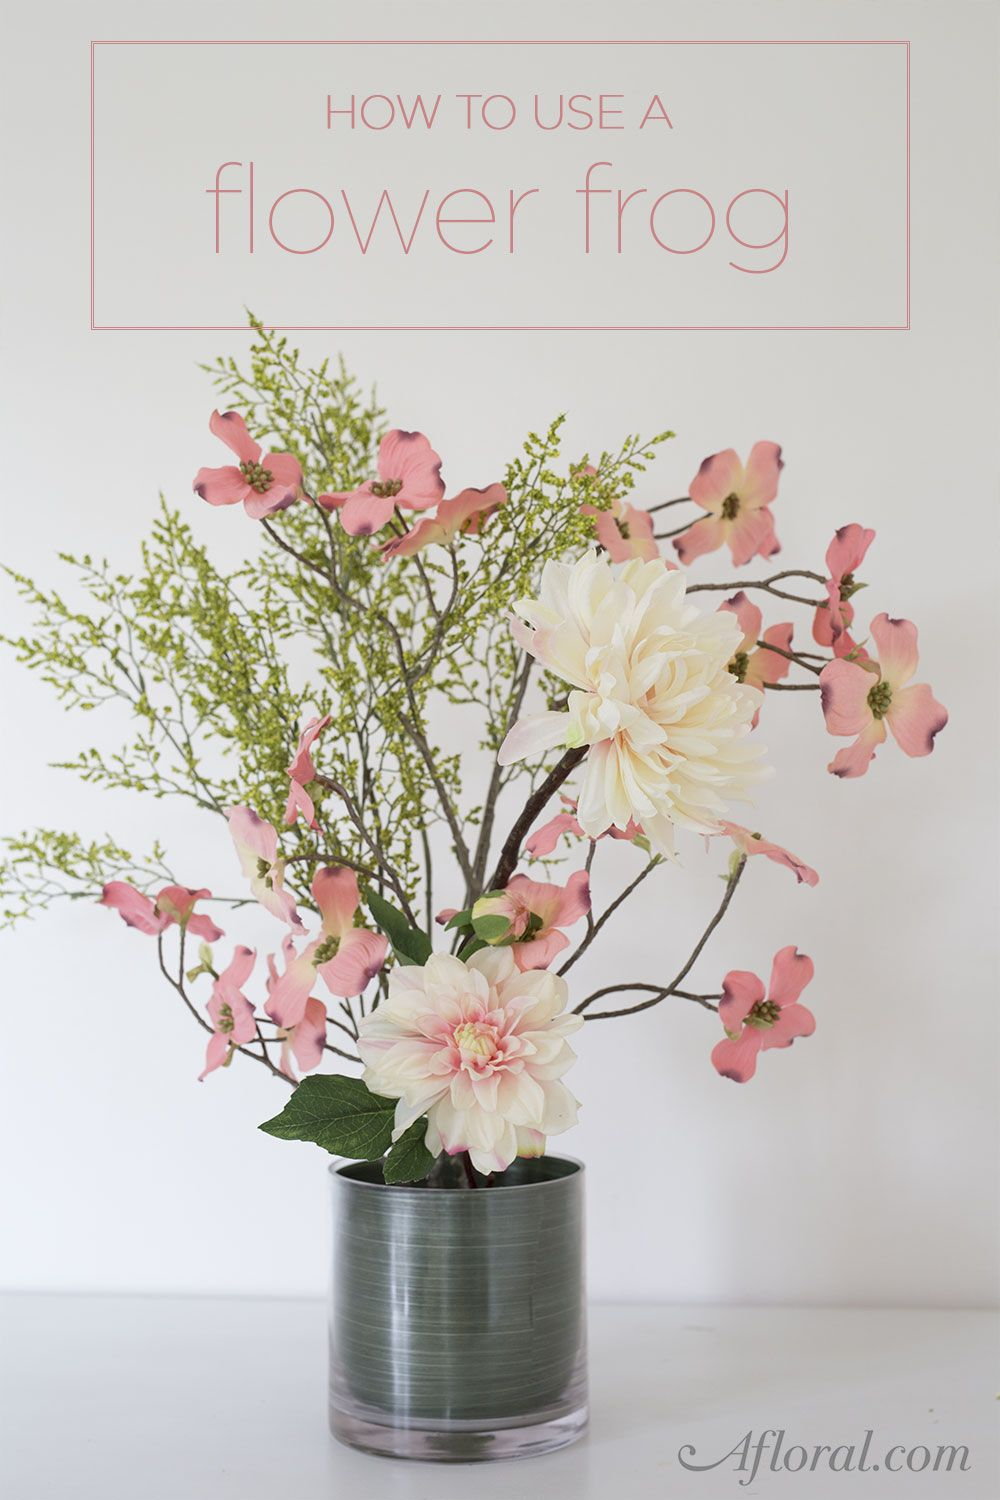 How to use a flower frog modern flower arrangements artificial learn how to create a modern flower arrangement with a floral frog and artificial flowers izmirmasajfo Images